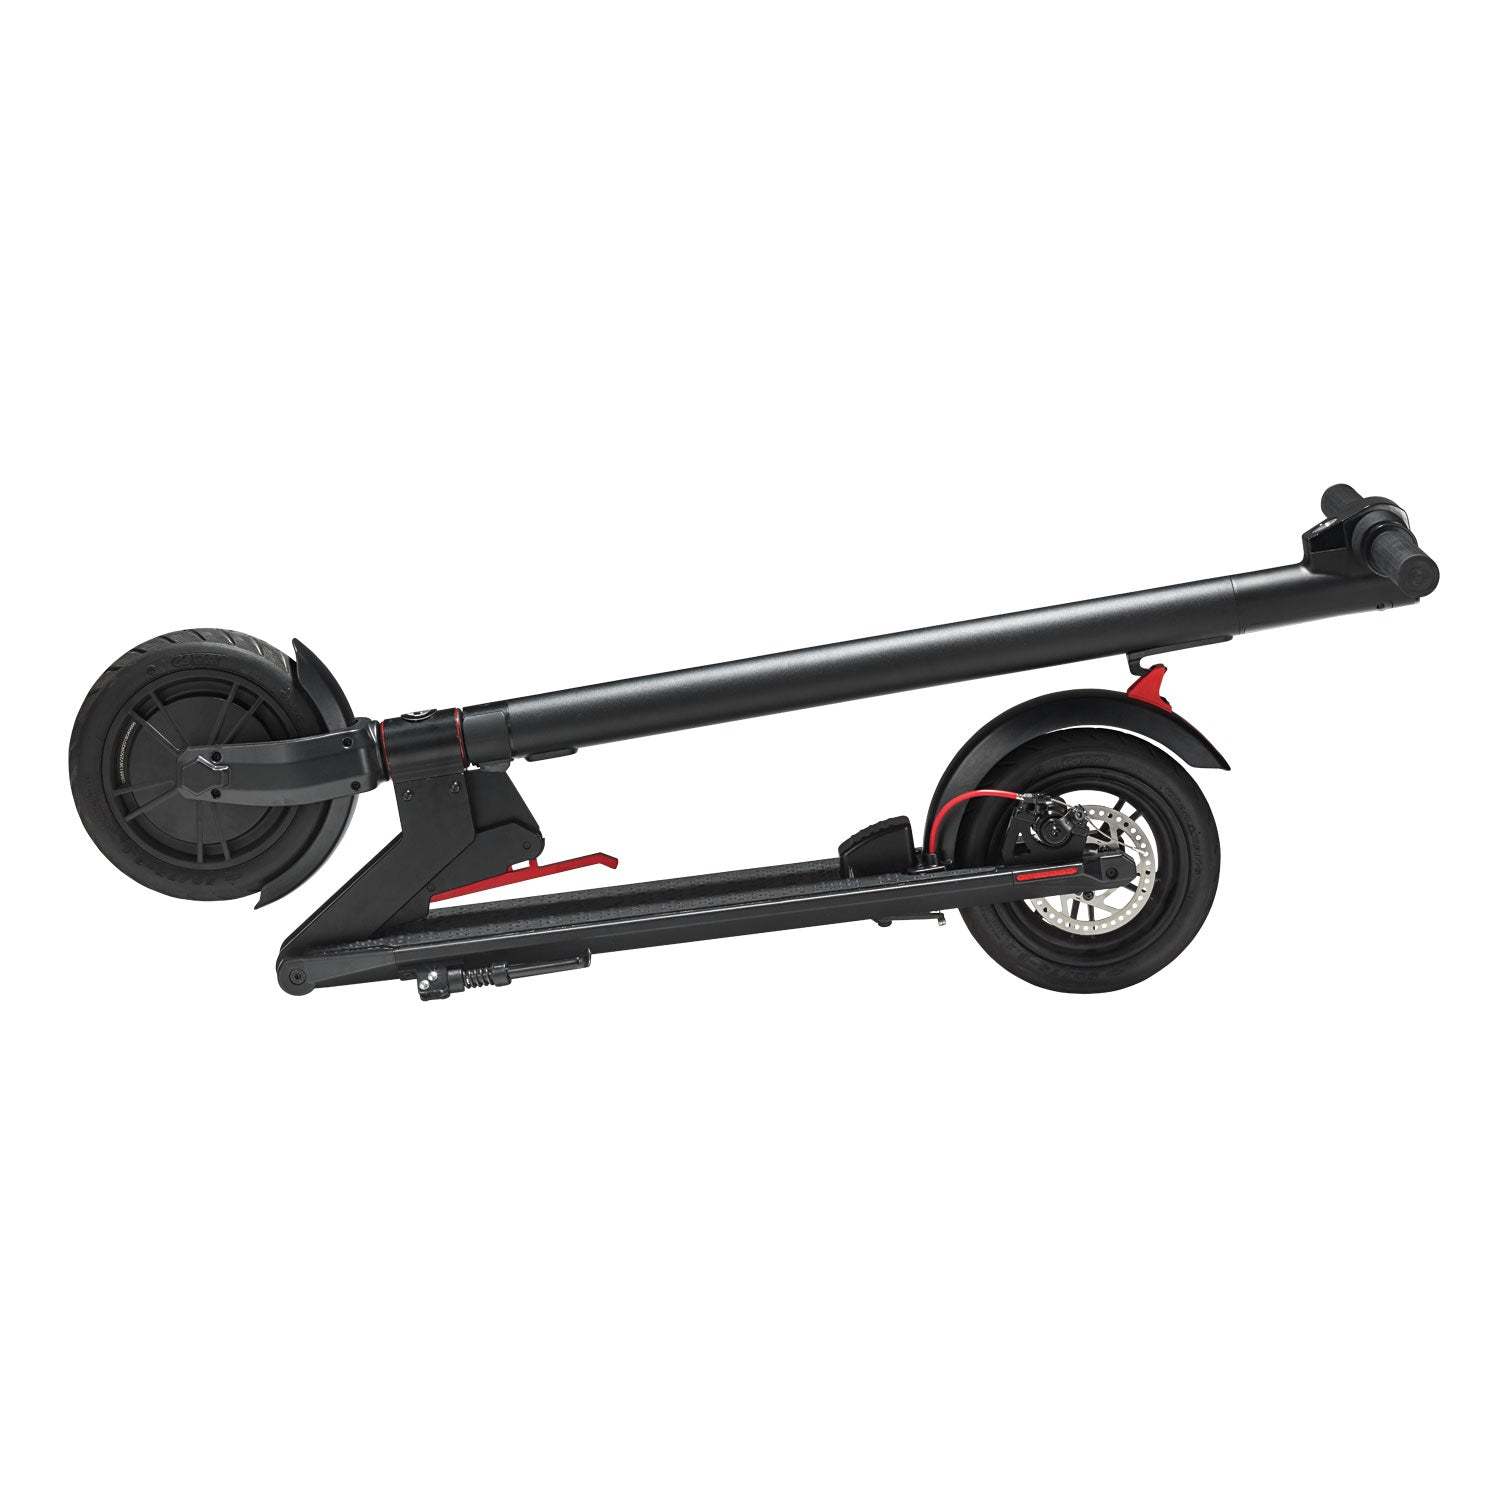 GXL electric scooter folded, black